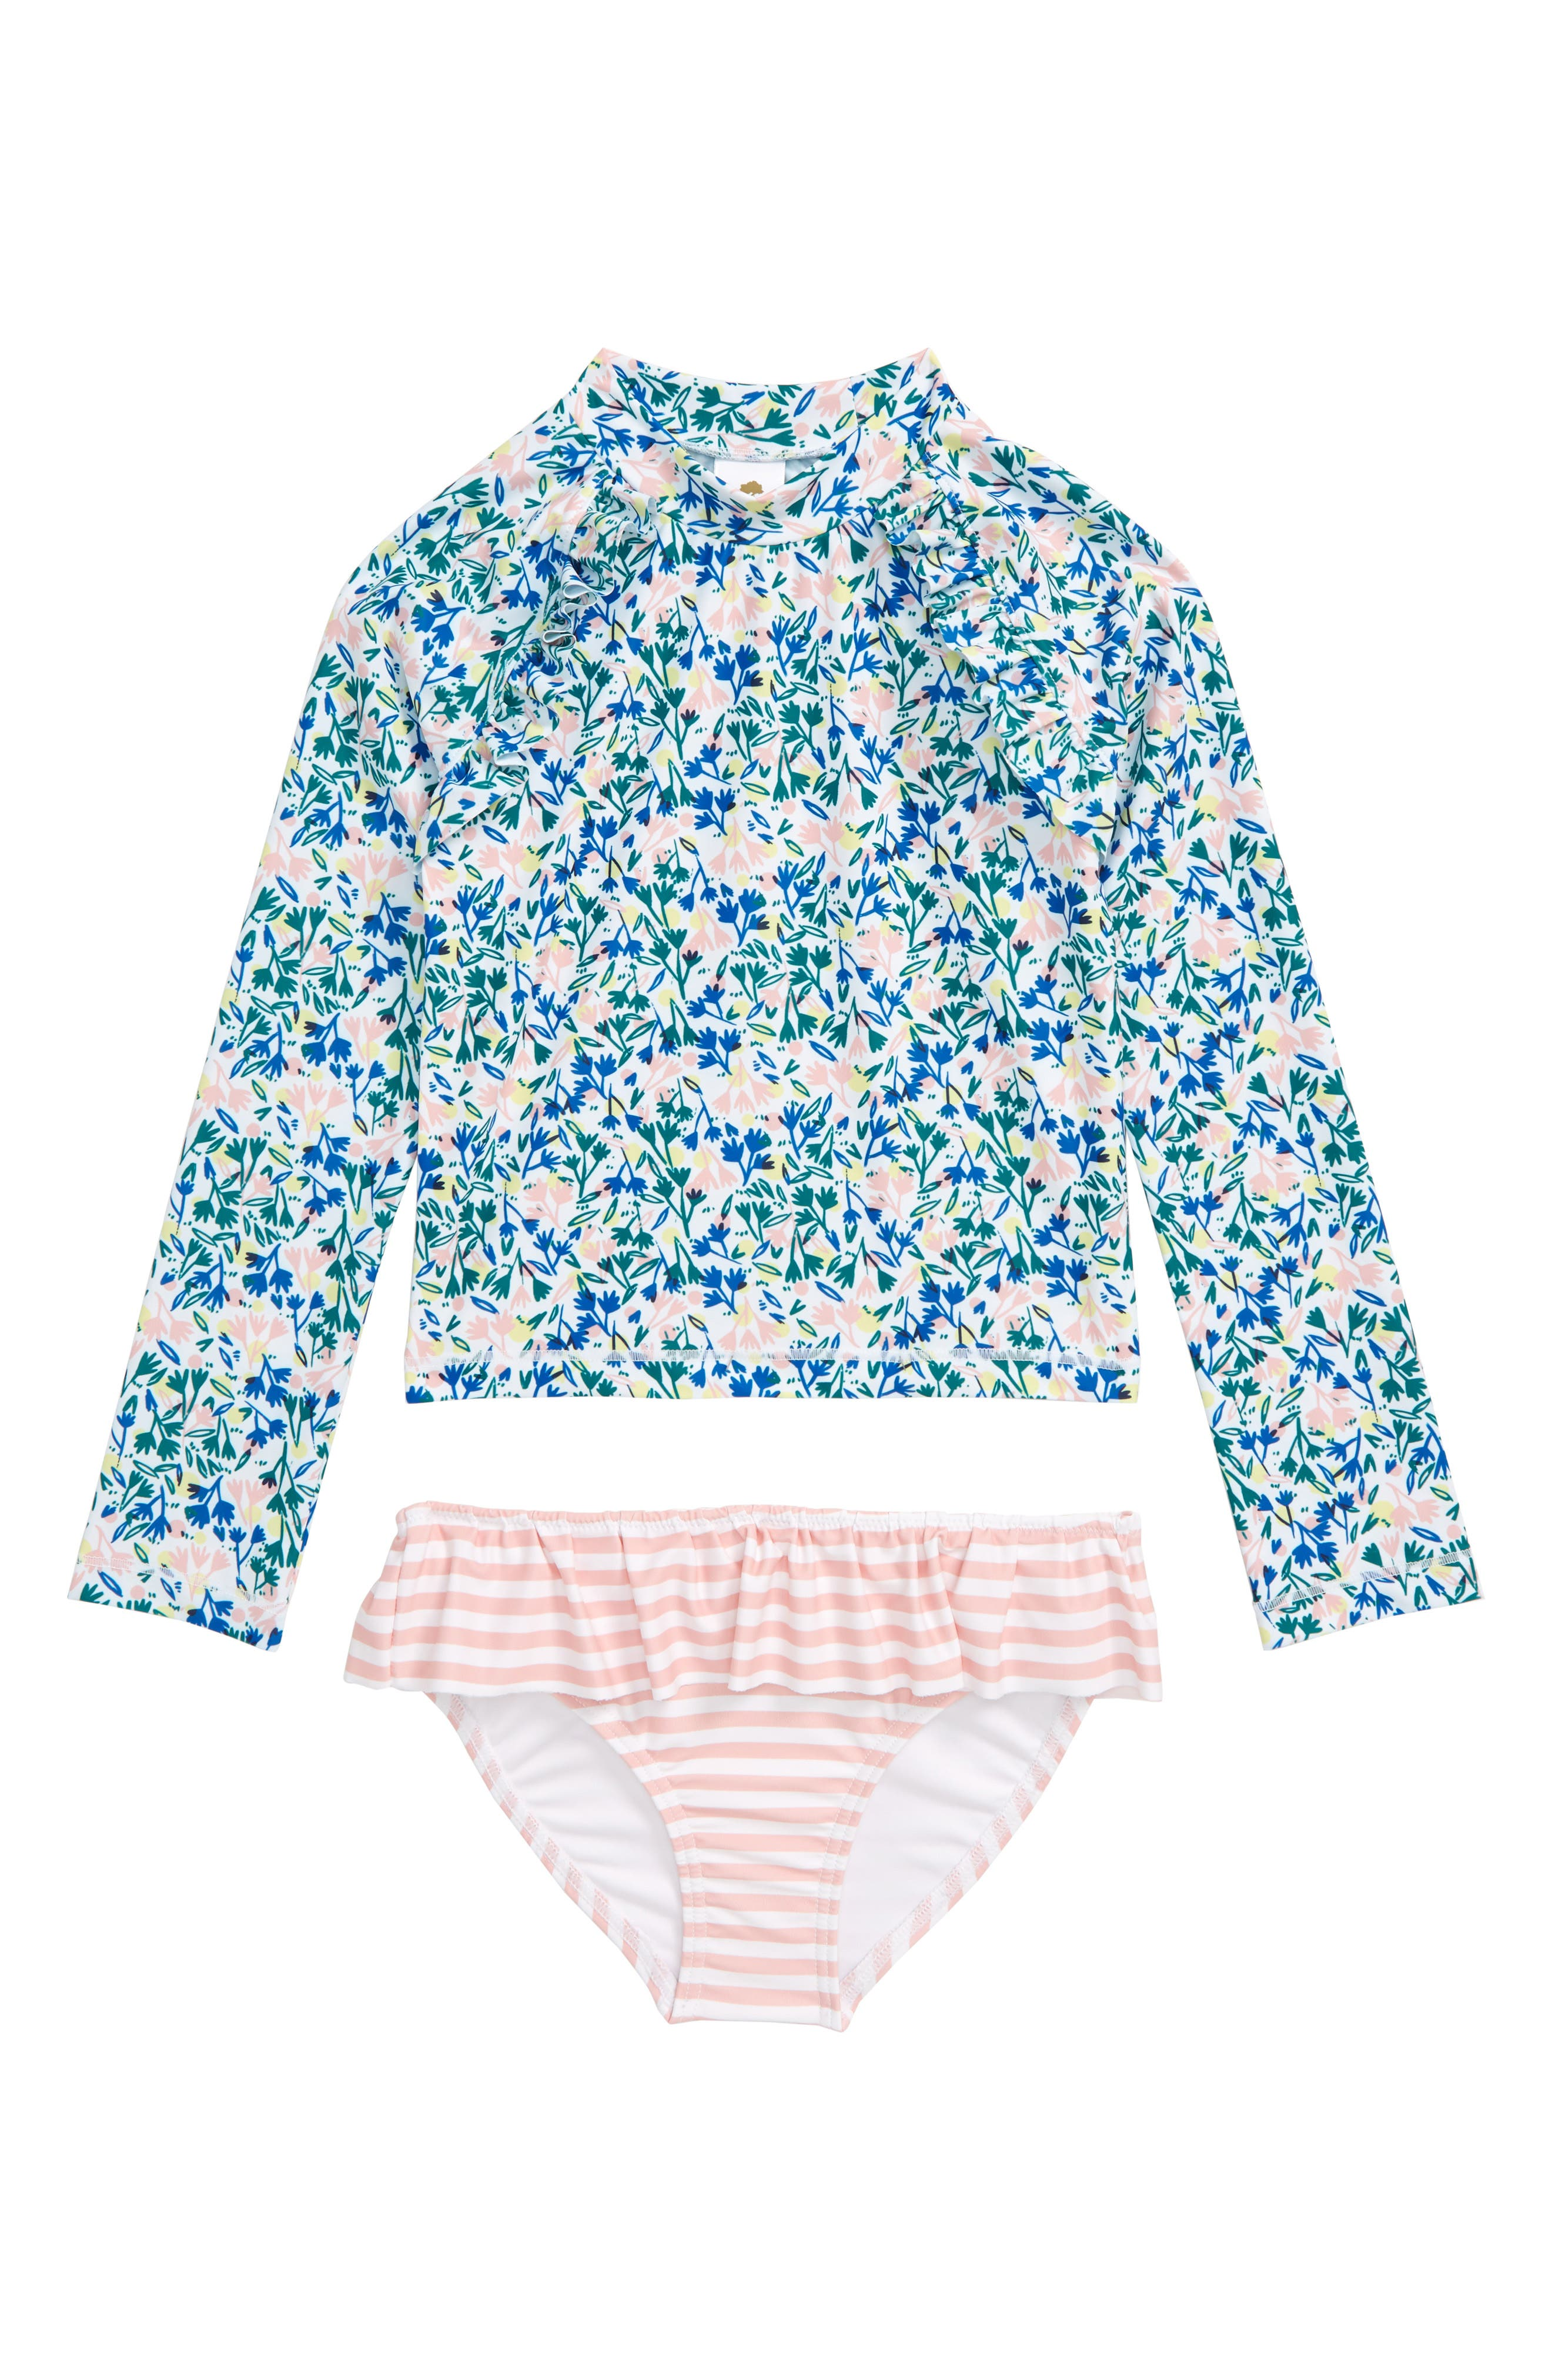 Keep her protected from the surf, sun and sand with this darling set pairing a long-sleeve rashguard with coordinating ruffled bottoms. Style Name: Tucker + Tate Graphic Ruffle Two-Piece Rashguard Swimsuit (Toddler, Little Girl & Big Girl). Style Number: 5874212. Available in stores.